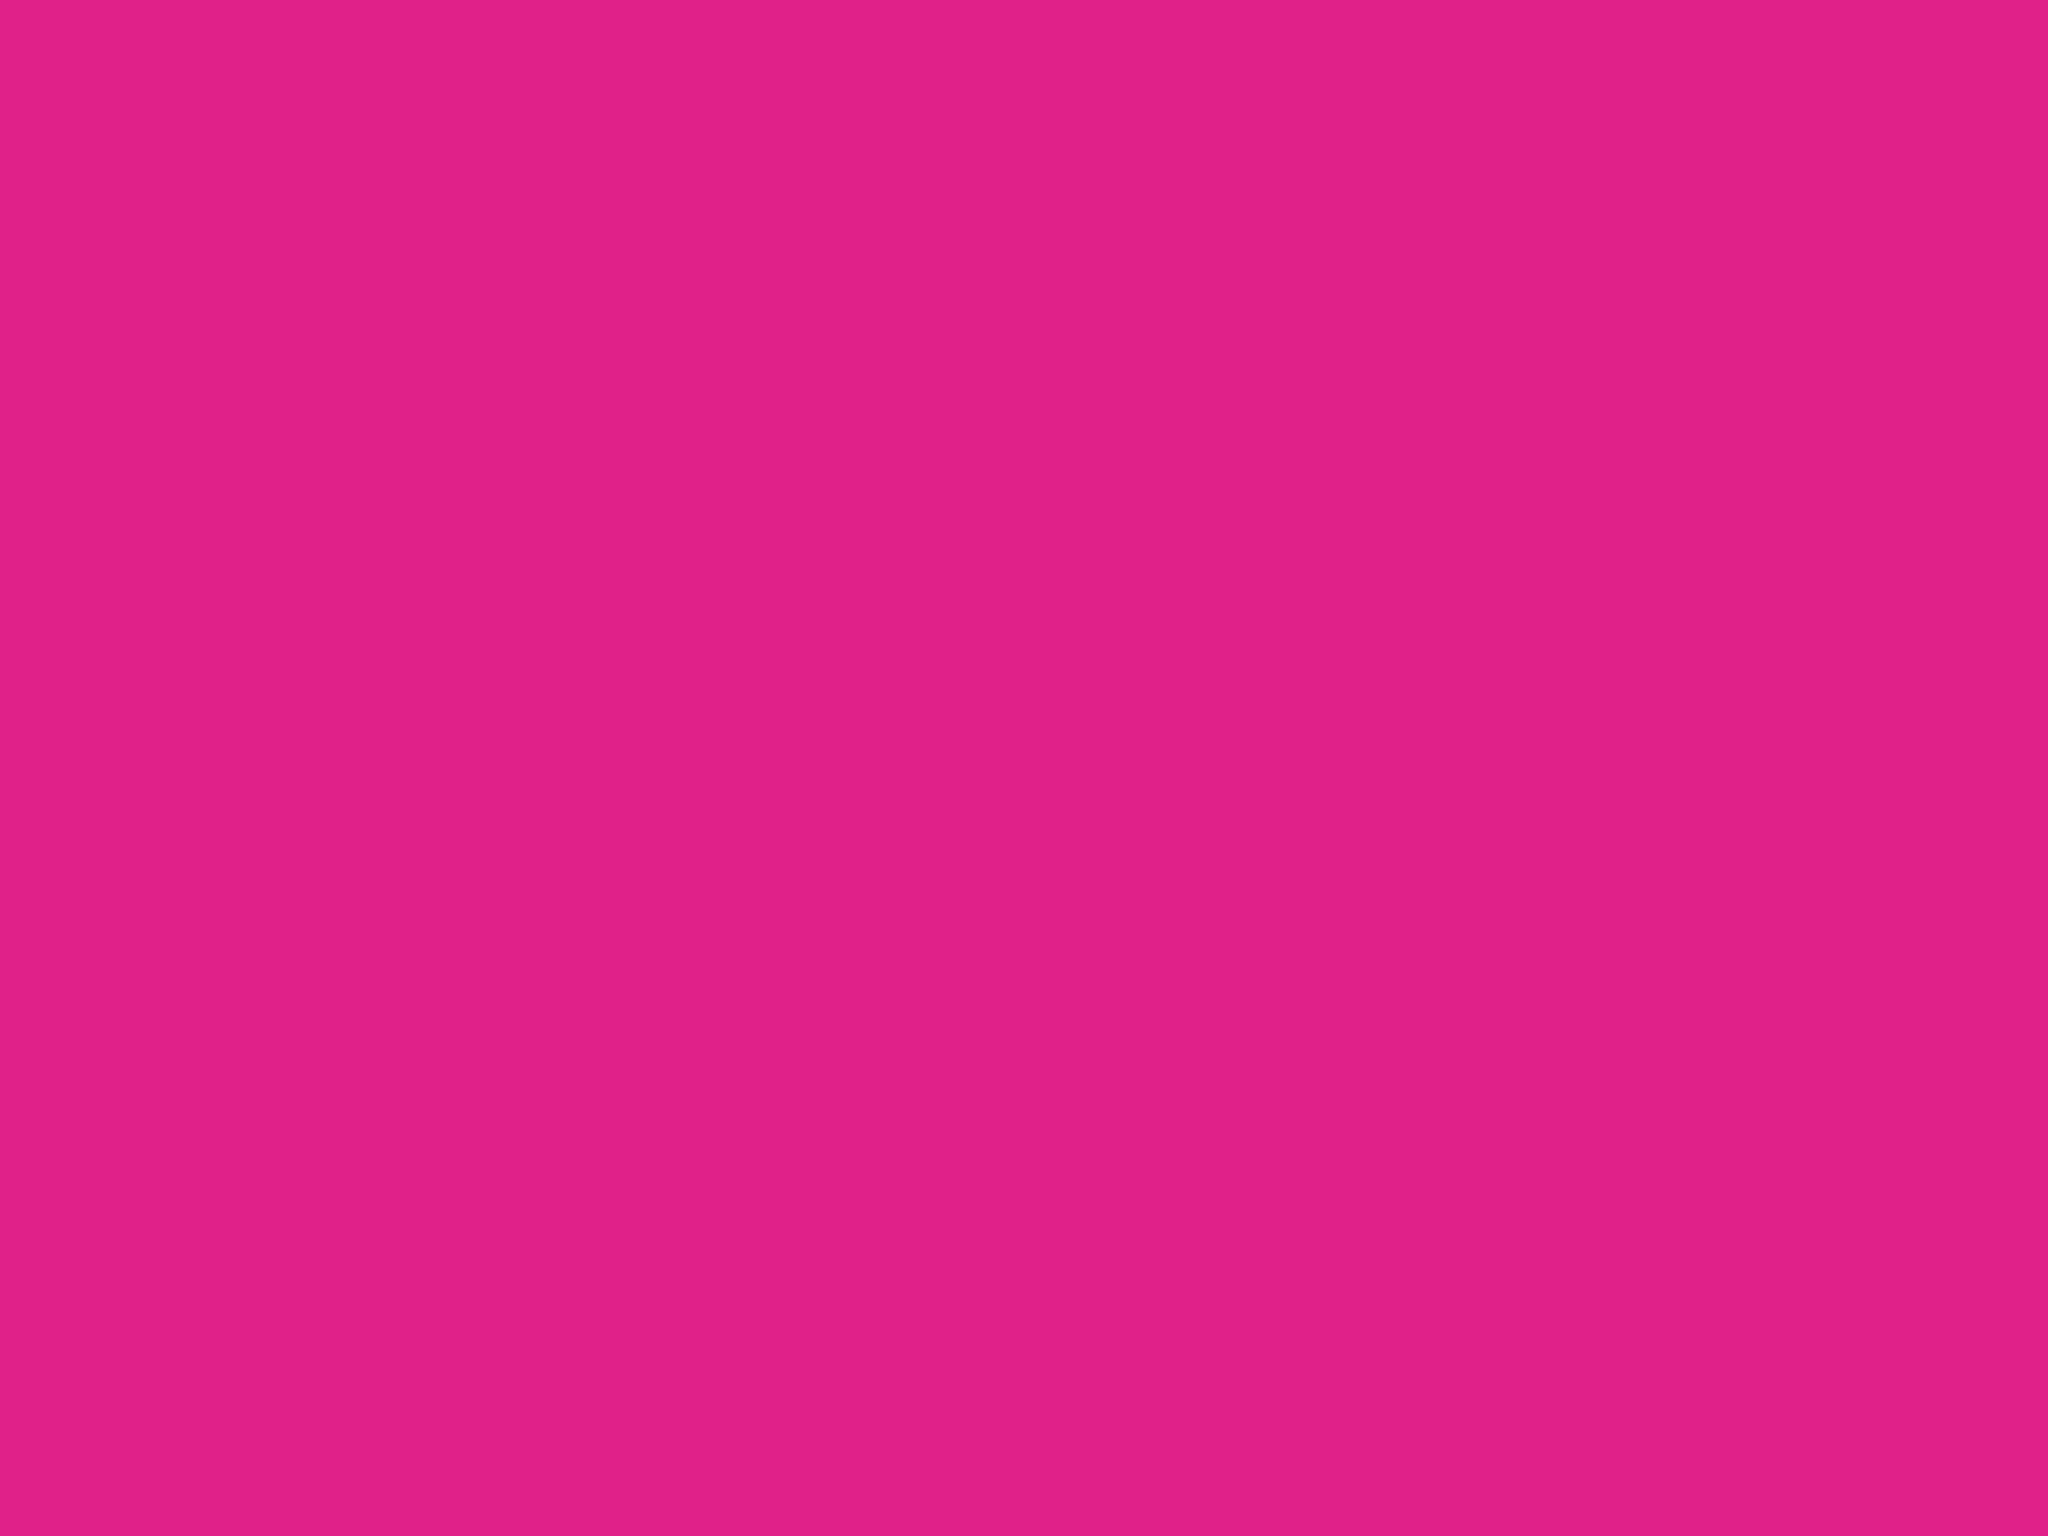 2048x1536 Barbie Pink Solid Color Background